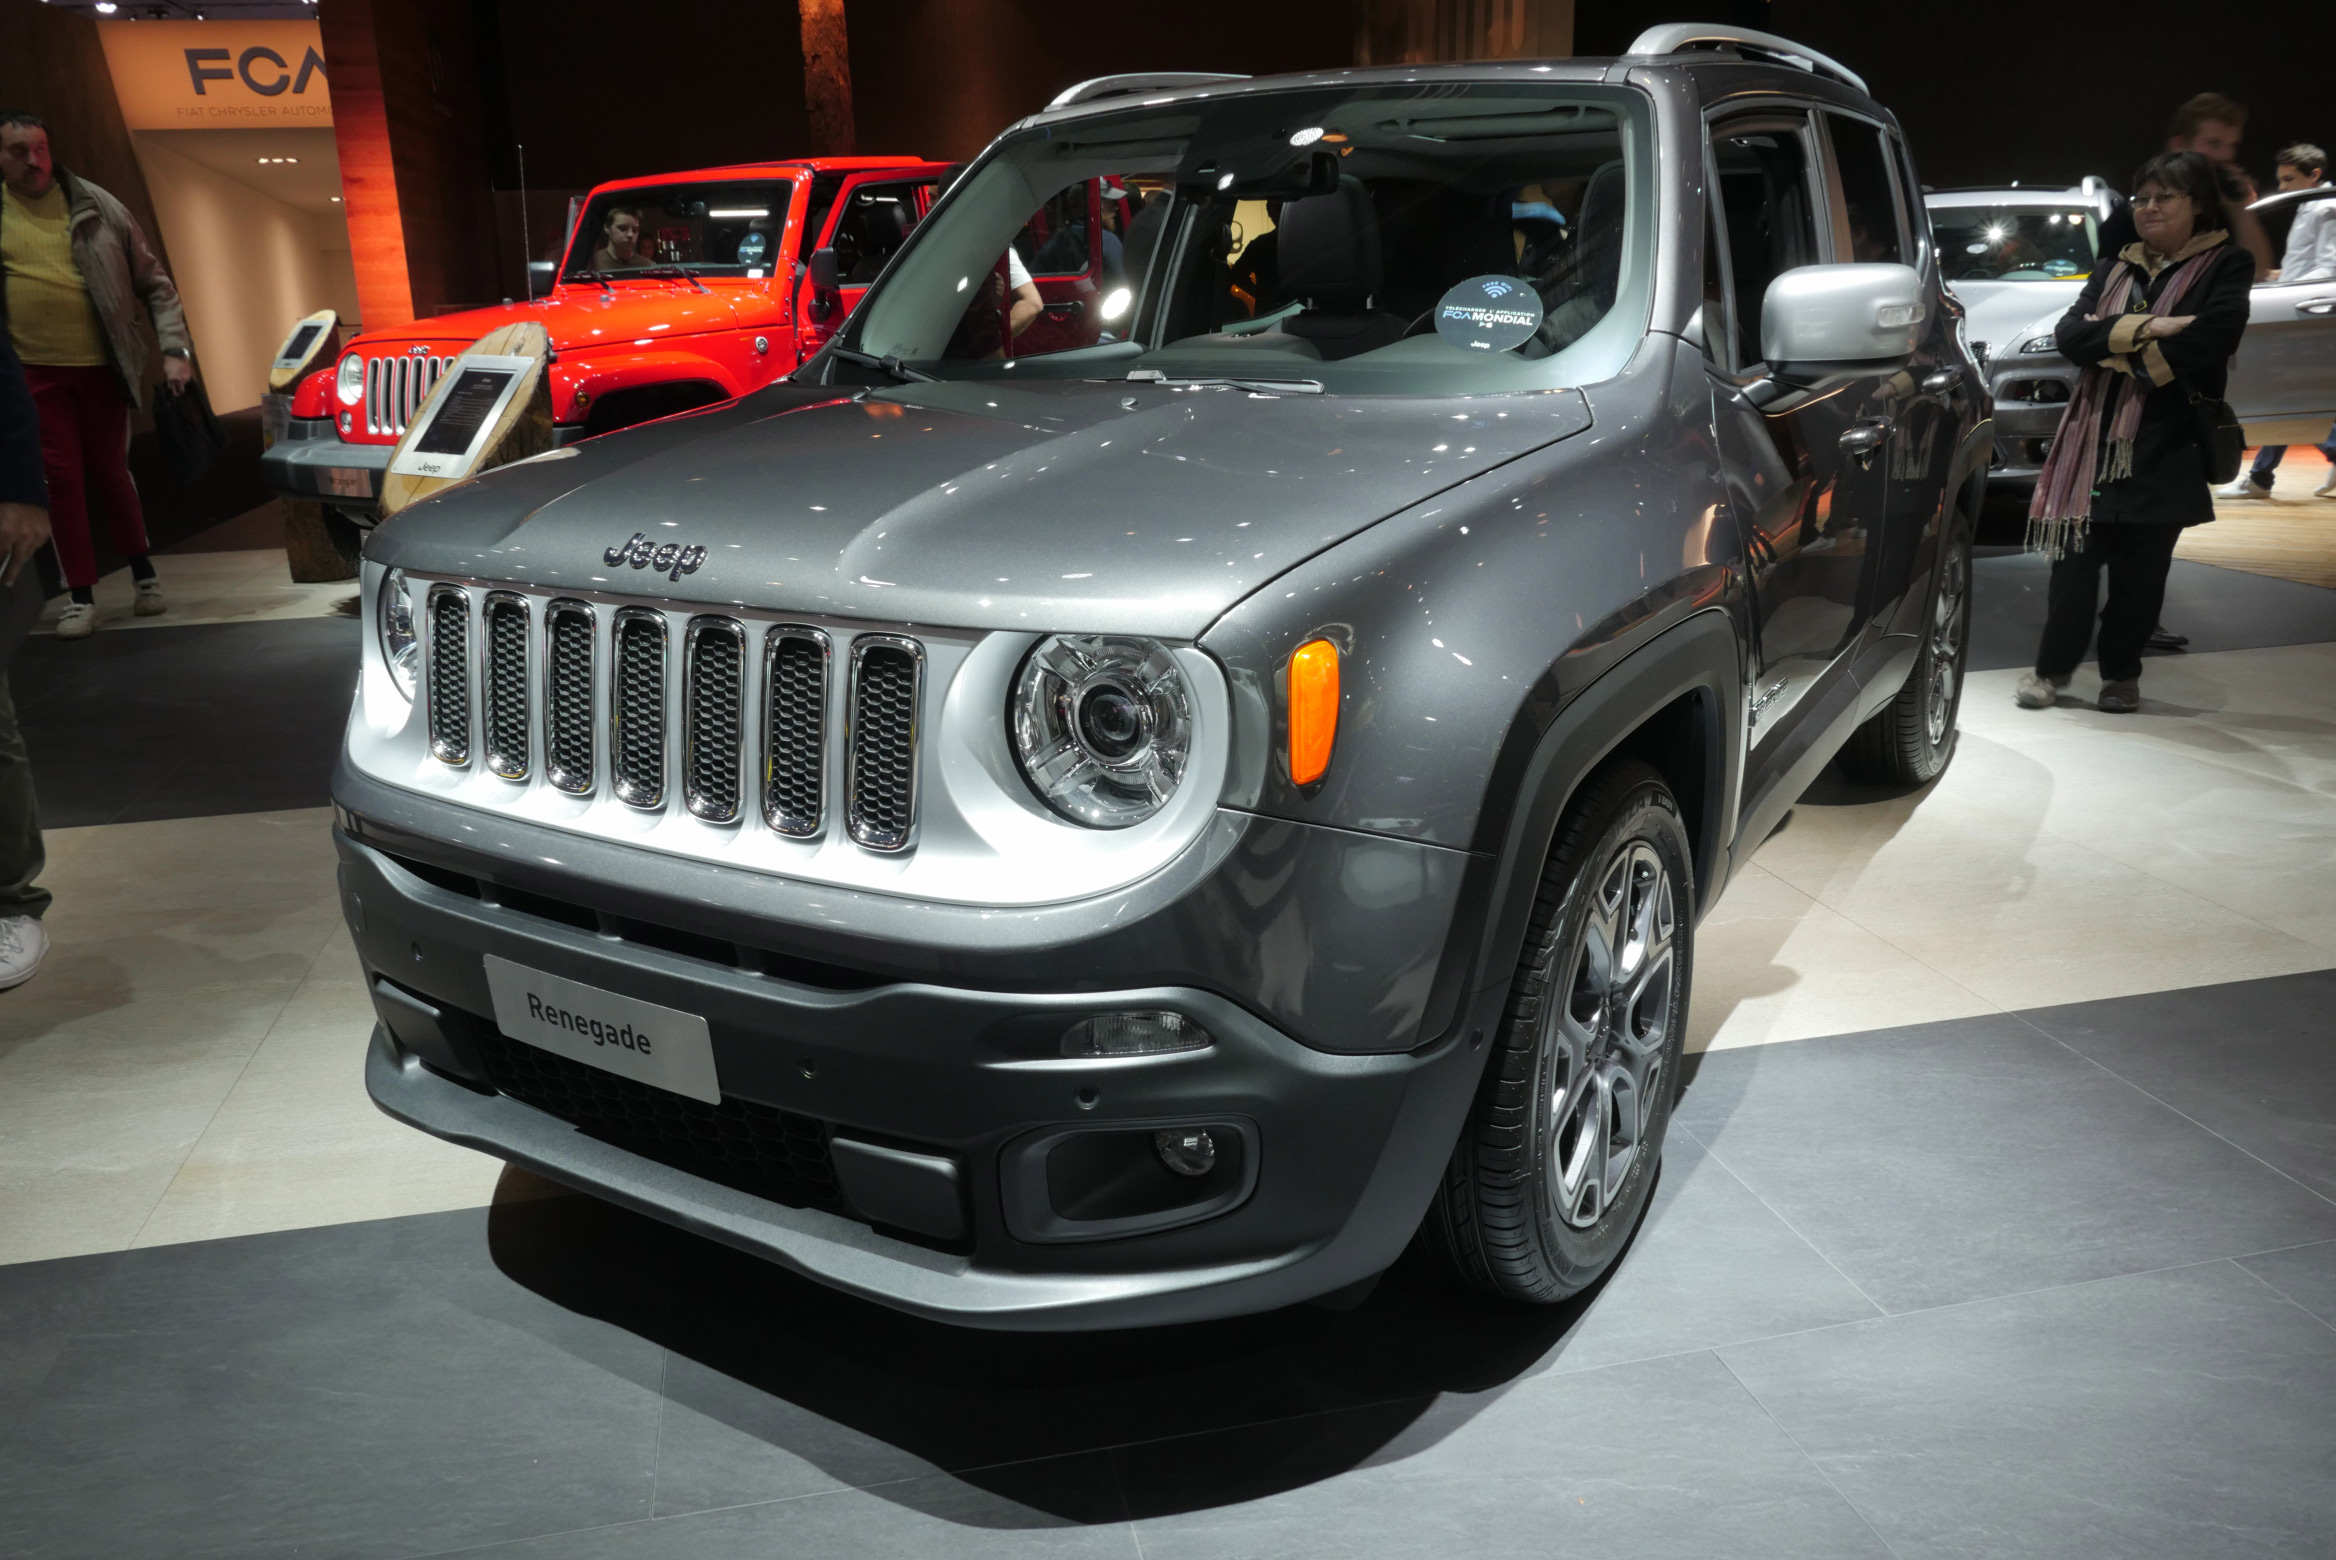 UConnect Jeep Renegade Paris Motor Show 2016